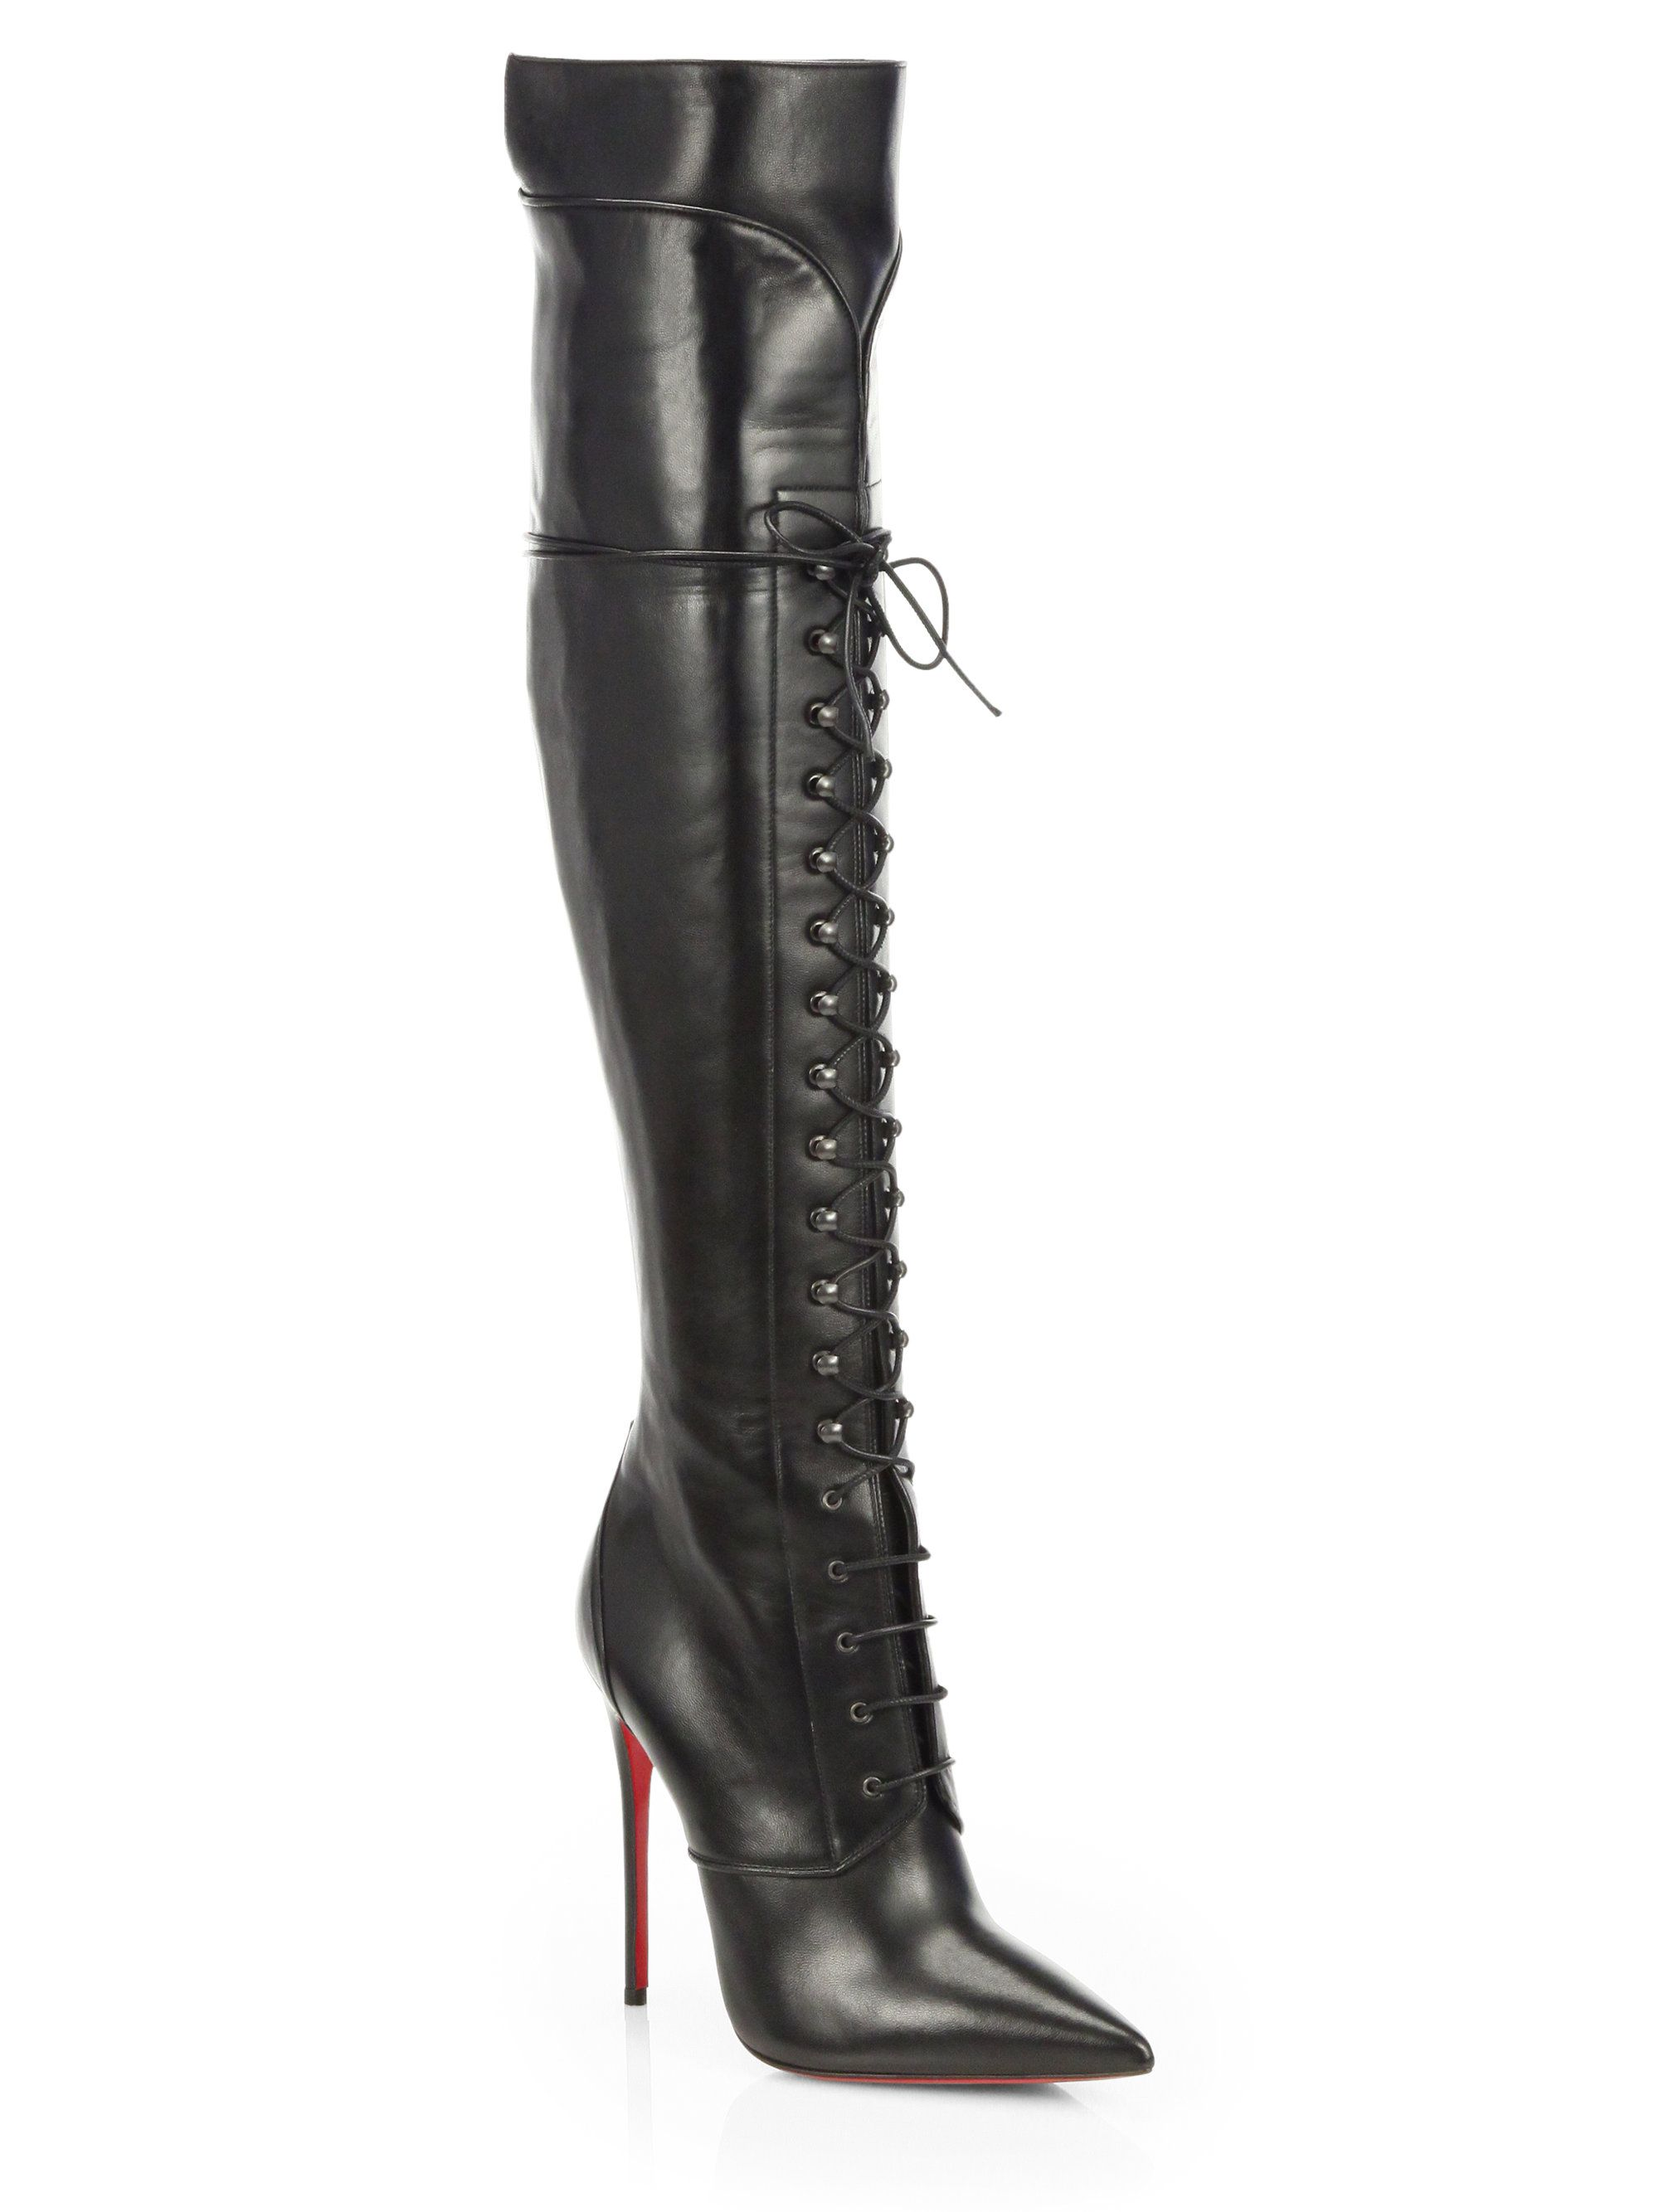 c80c2e4613111c Christian Louboutin Mado Leather Lace-up Over the knee Boots in Black